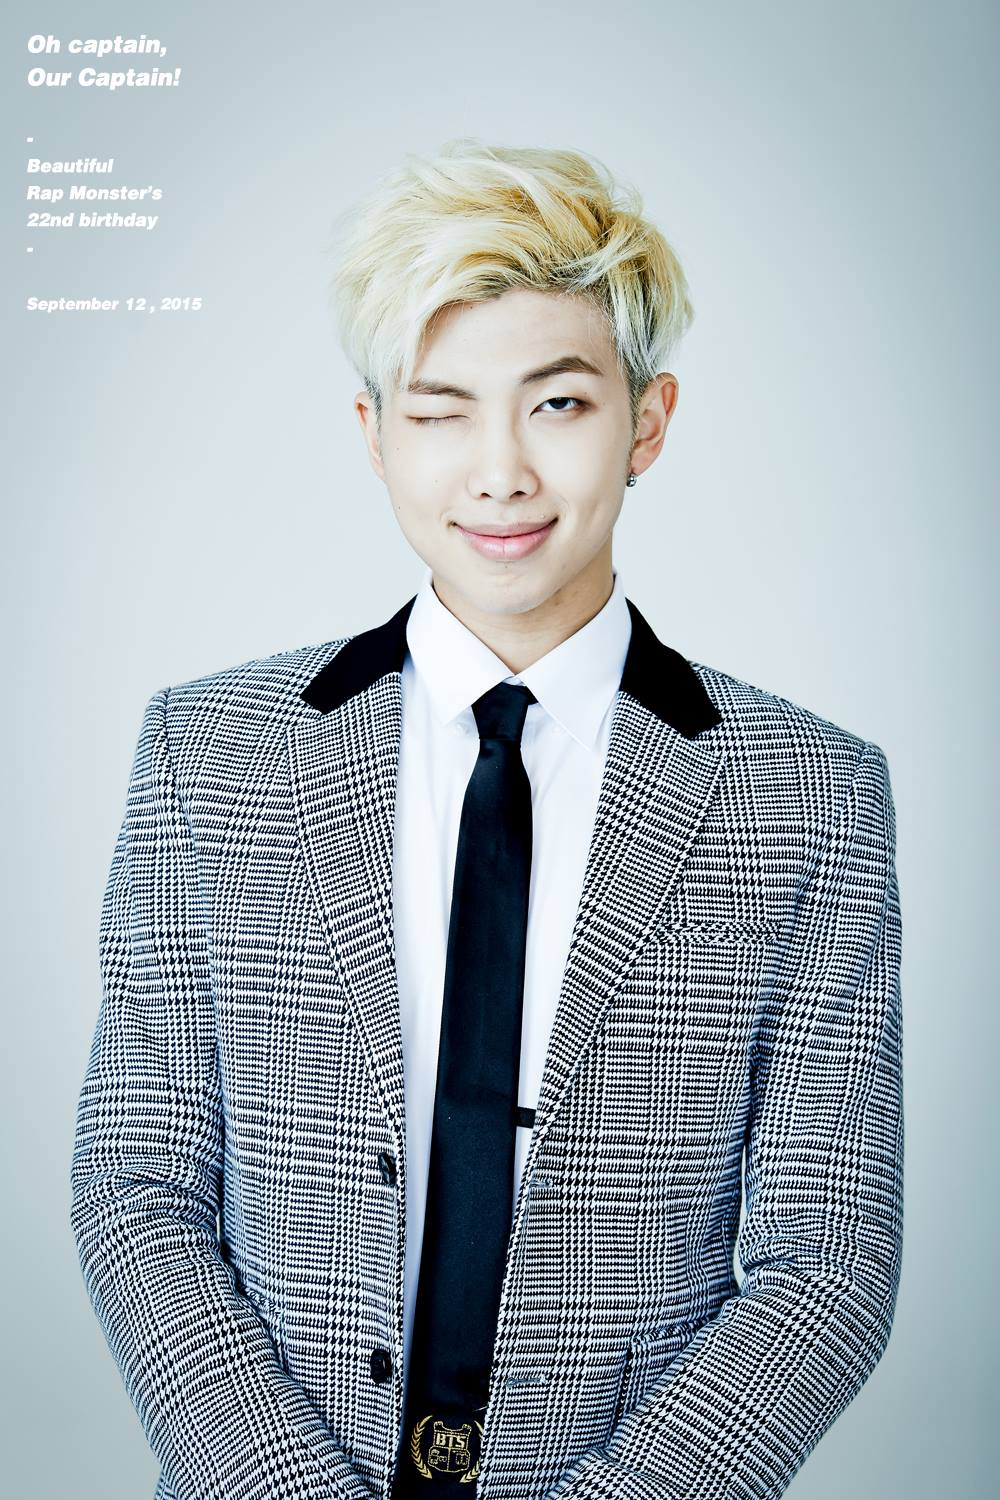 Happy랩몬day Armys Celebrate Bts Rap Monster S 22nd Birthday